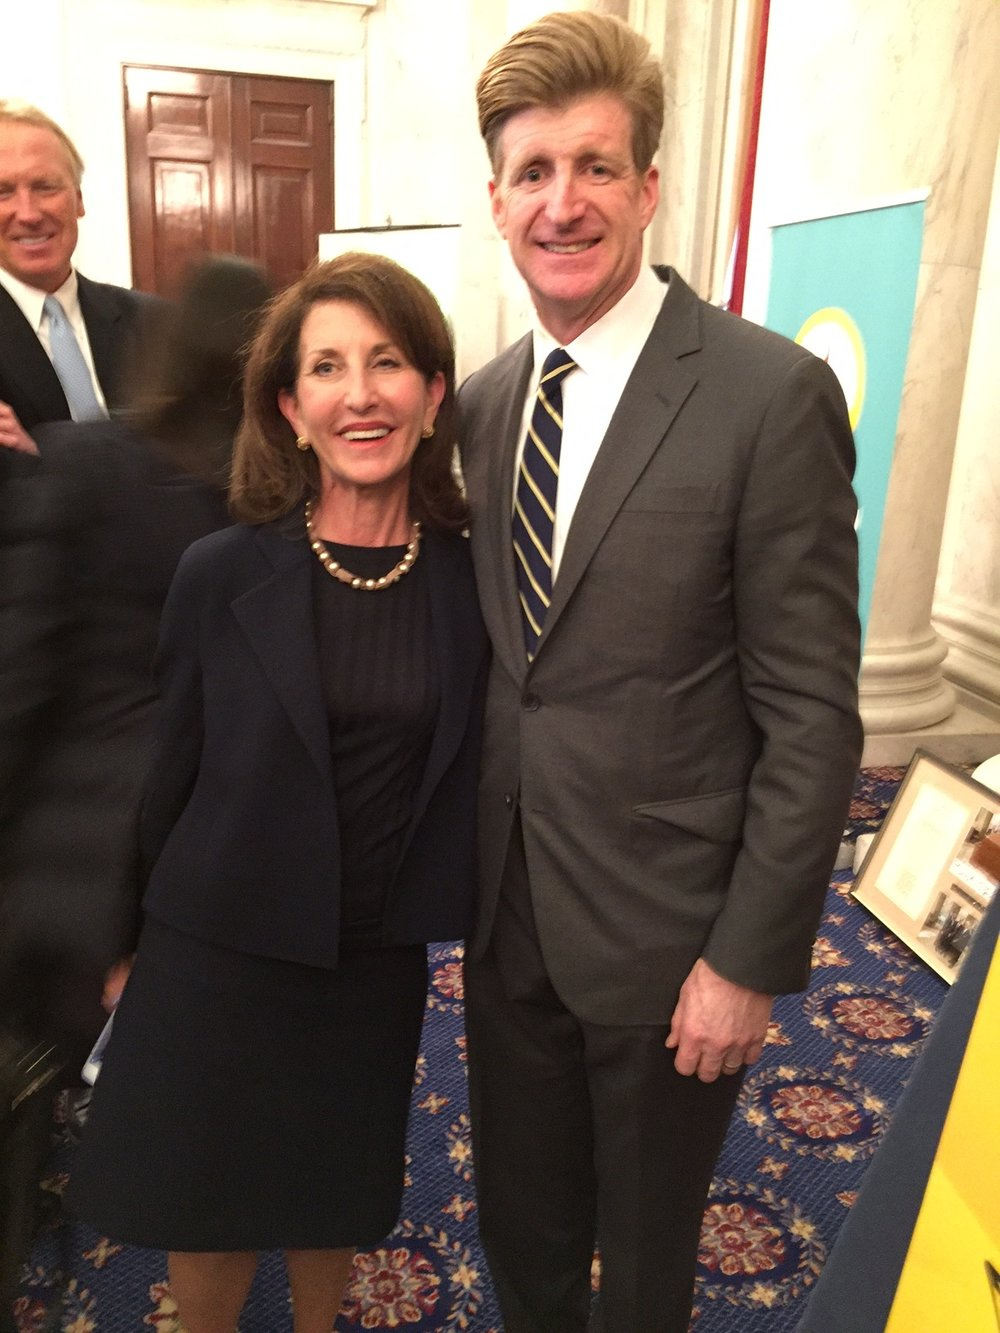 Anne with Patrick Kennedy.JPG